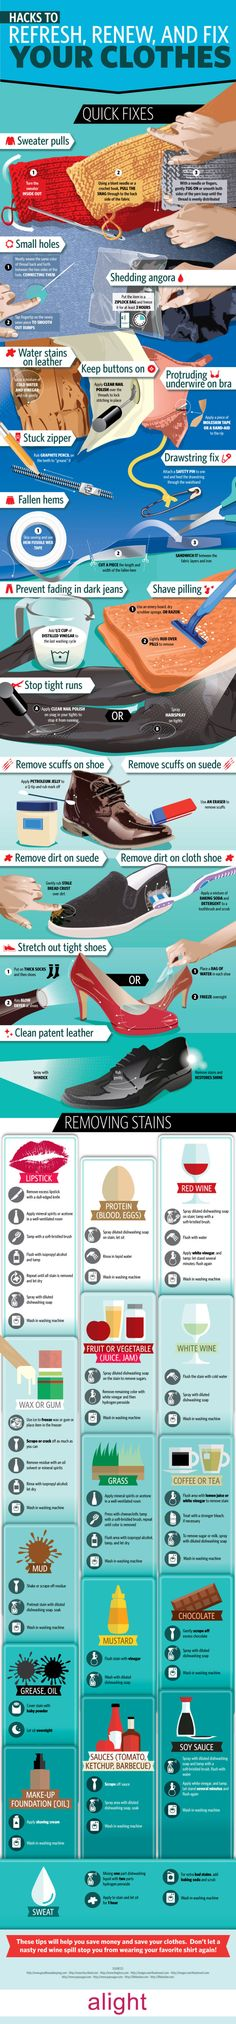 Clothing Hacks to Refresh, Renew, and Fix Your Clothes (courtesy of Alight.com)